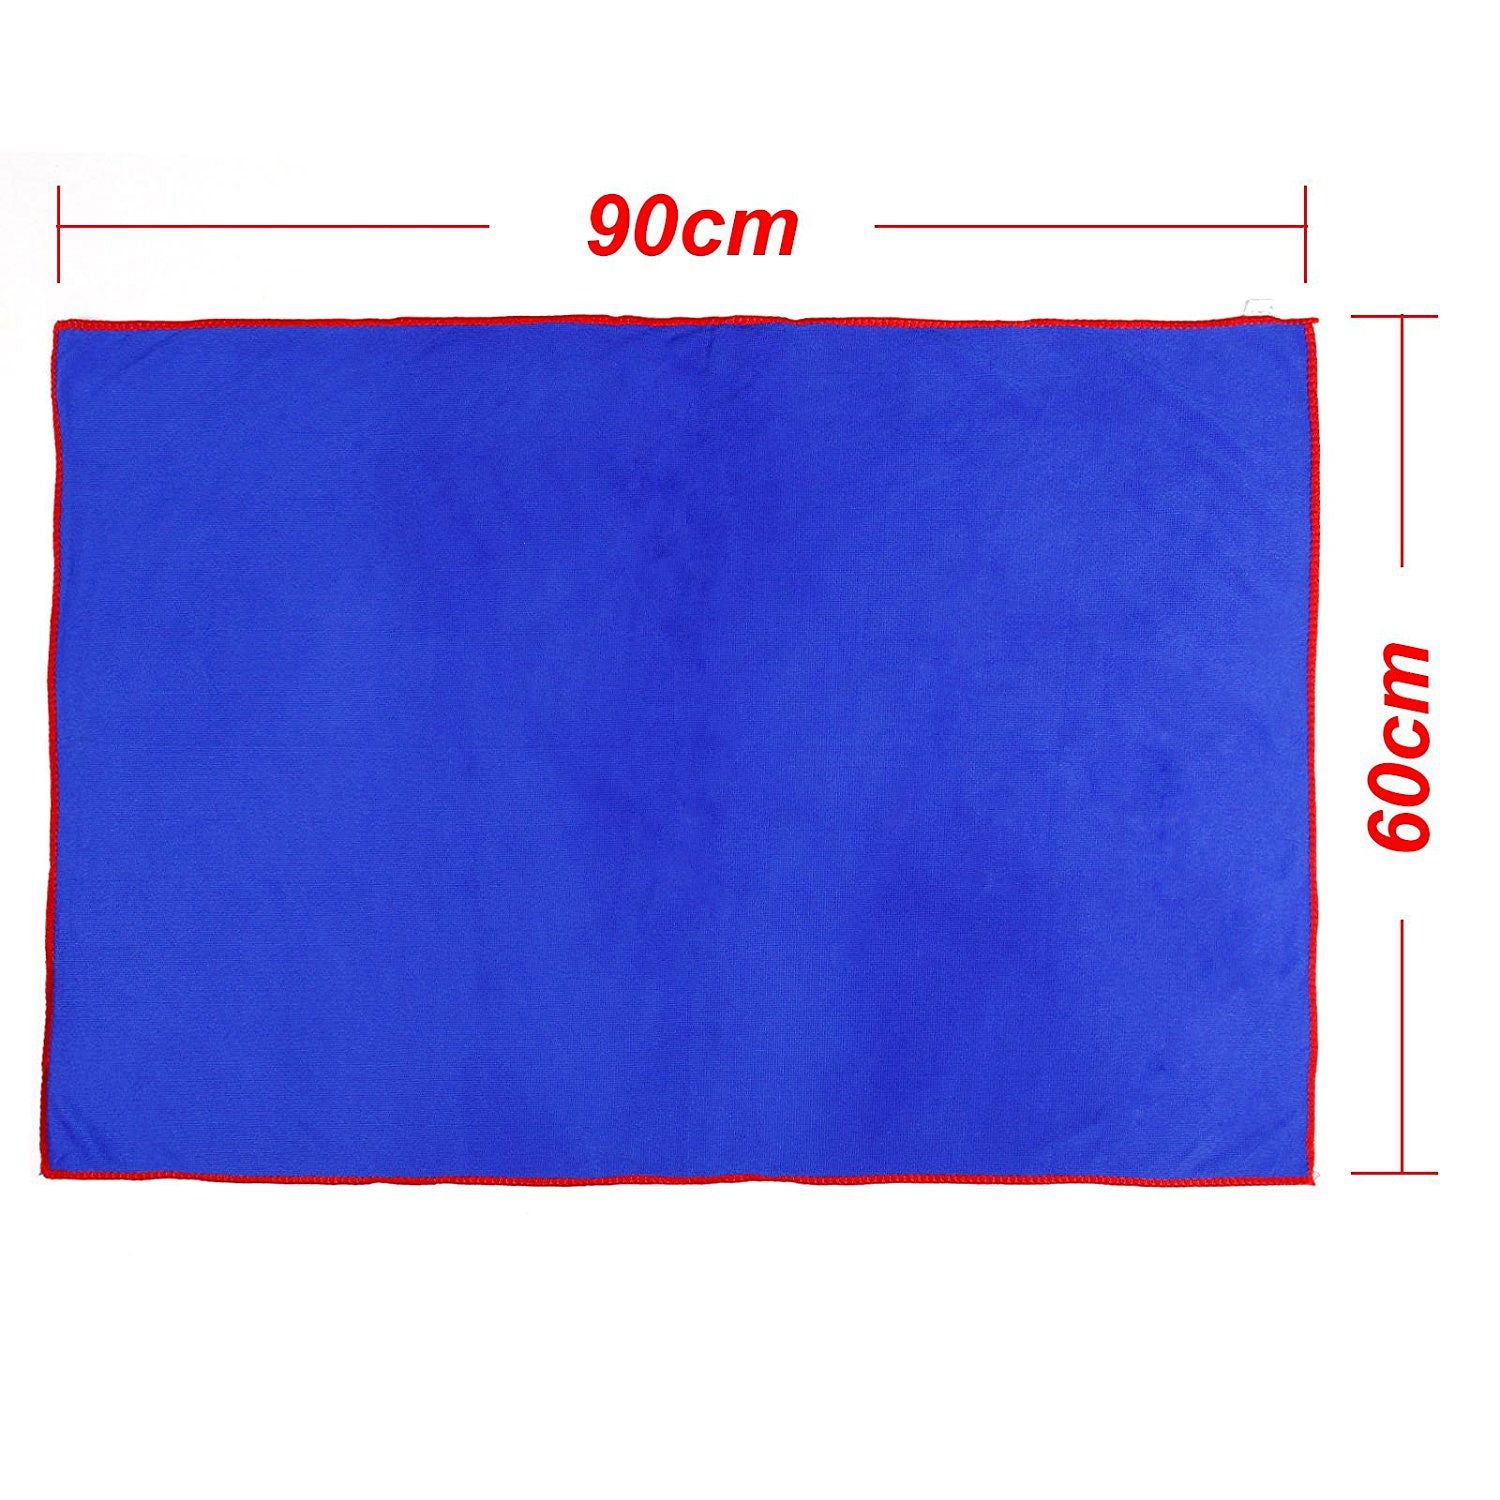 5 x Towel Cleaning cloth Cleaning car furniture home window Blue 90 x 60 cm